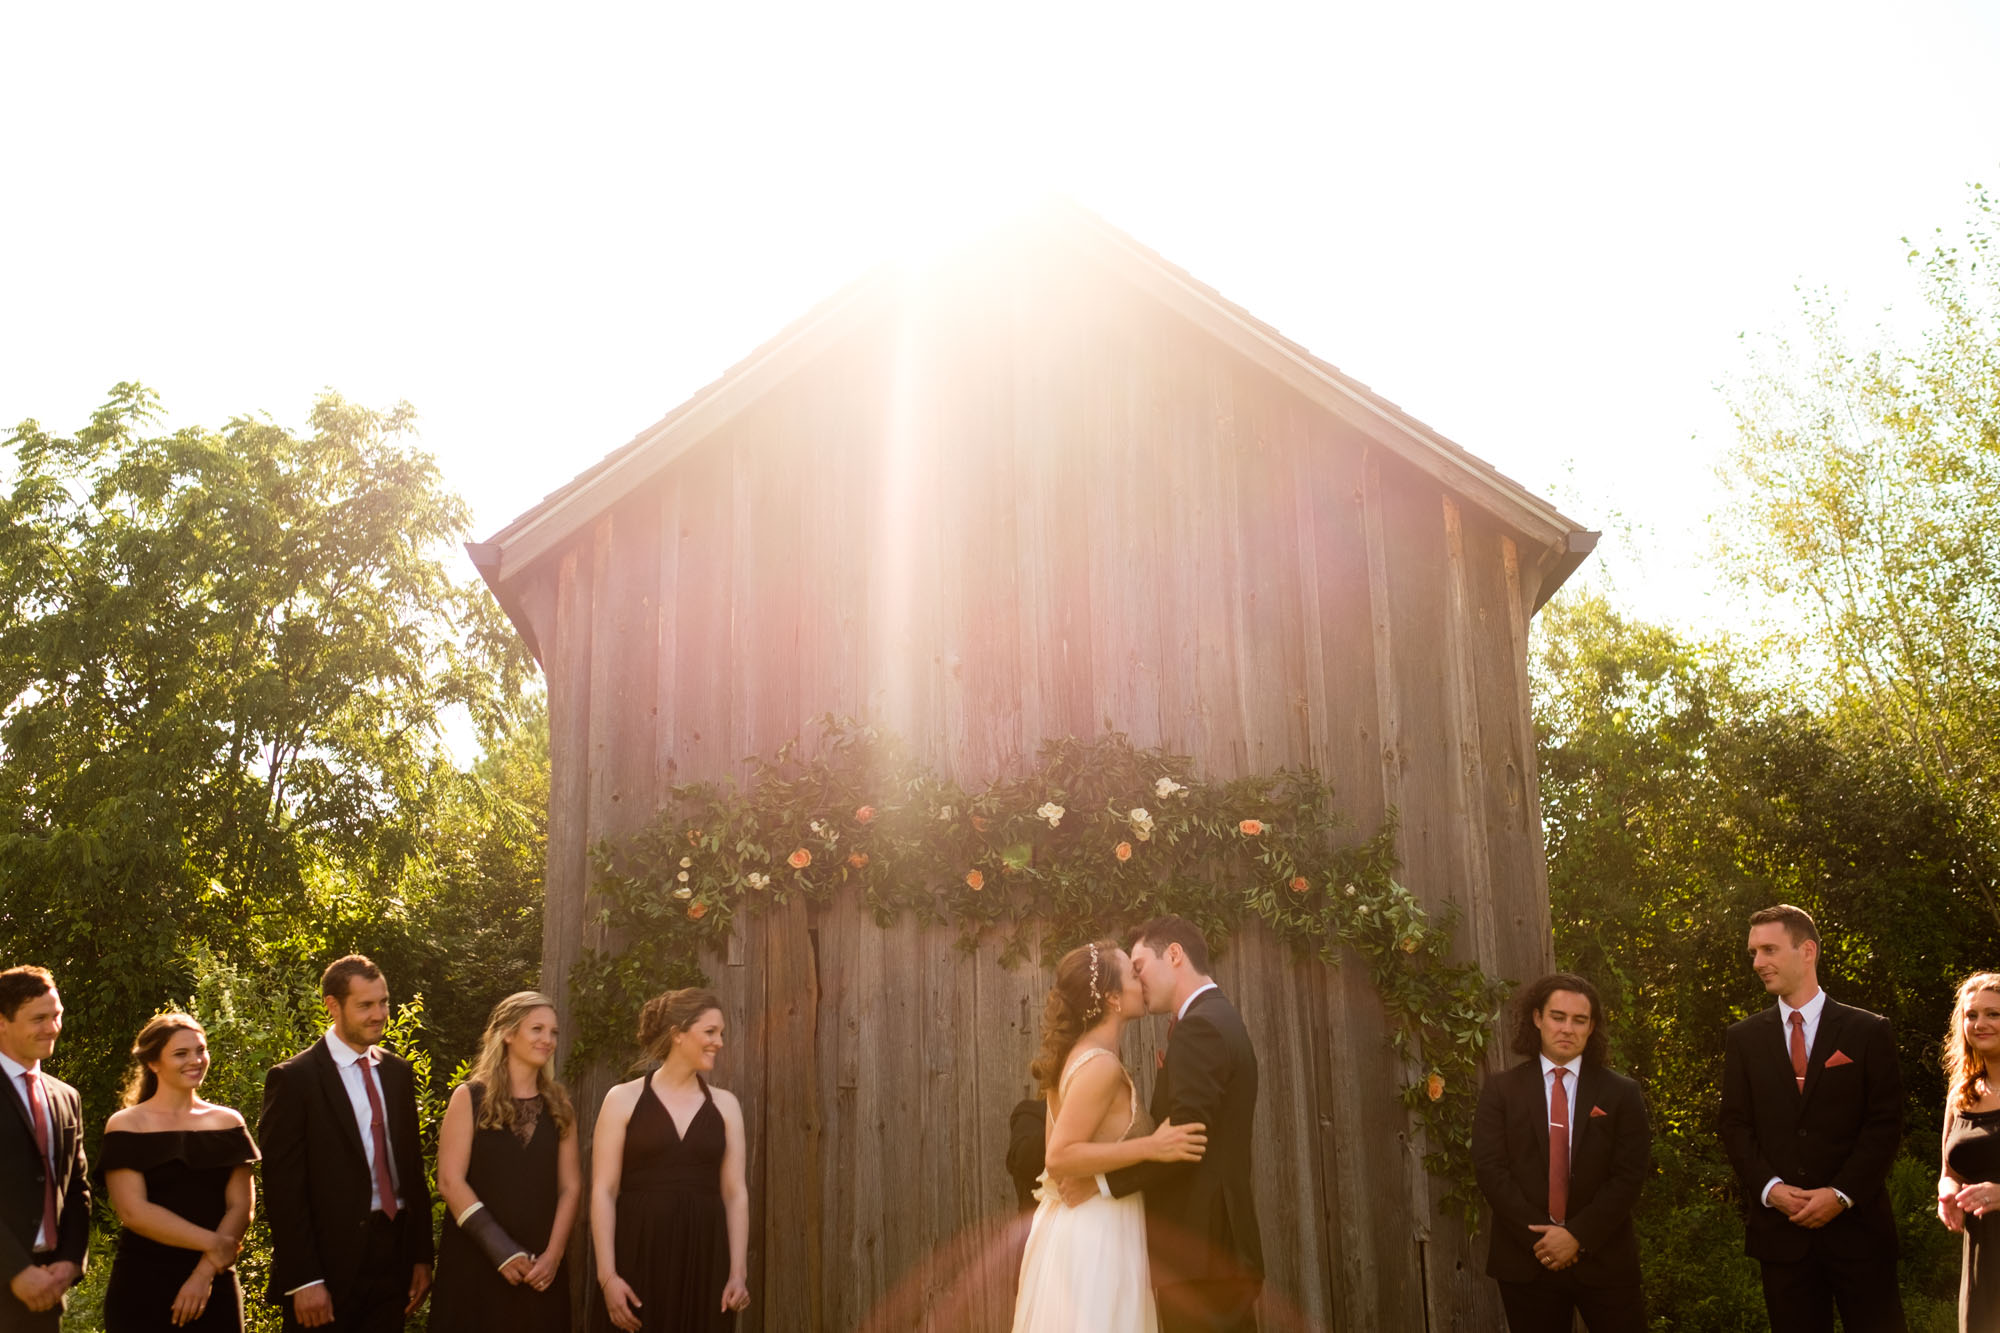 Jennifer and Andrew kiss during the outdoor wedding ceremony at the Markham Museum